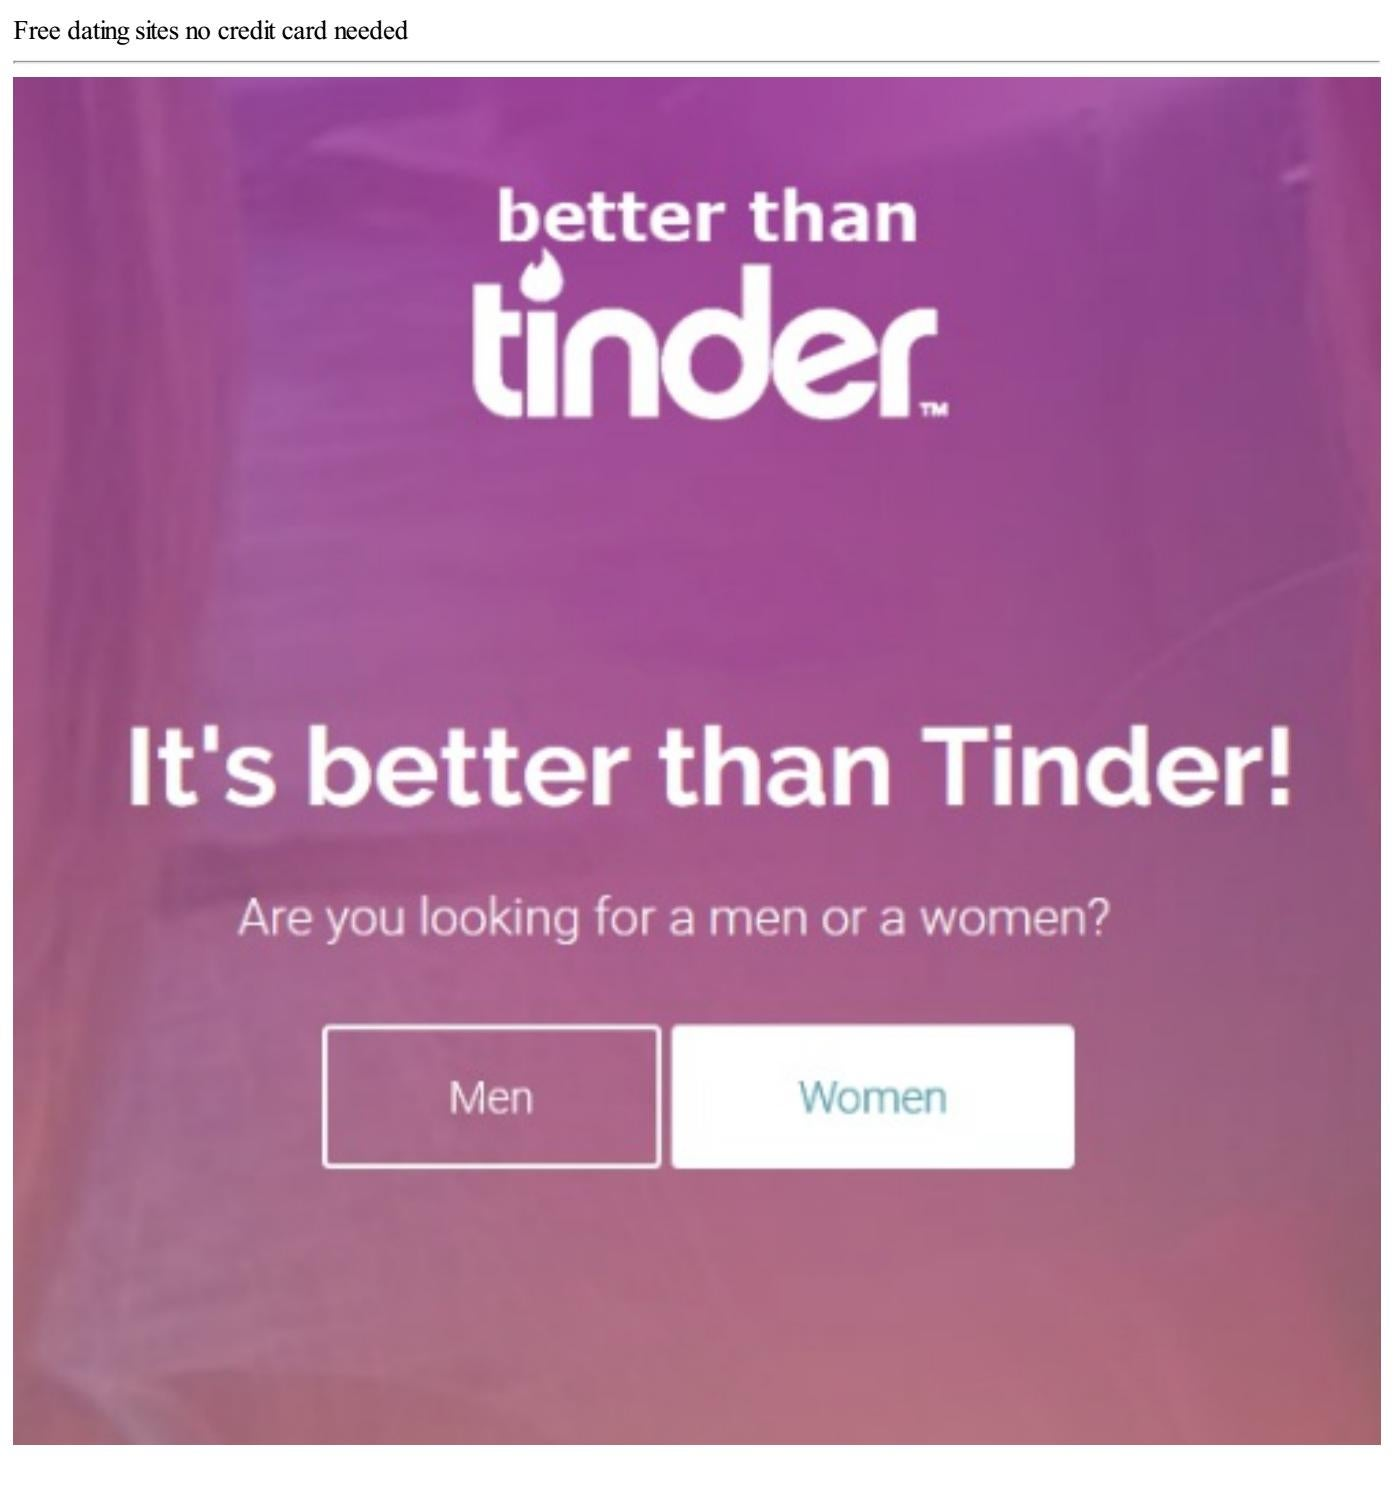 Any free dating site without credit card